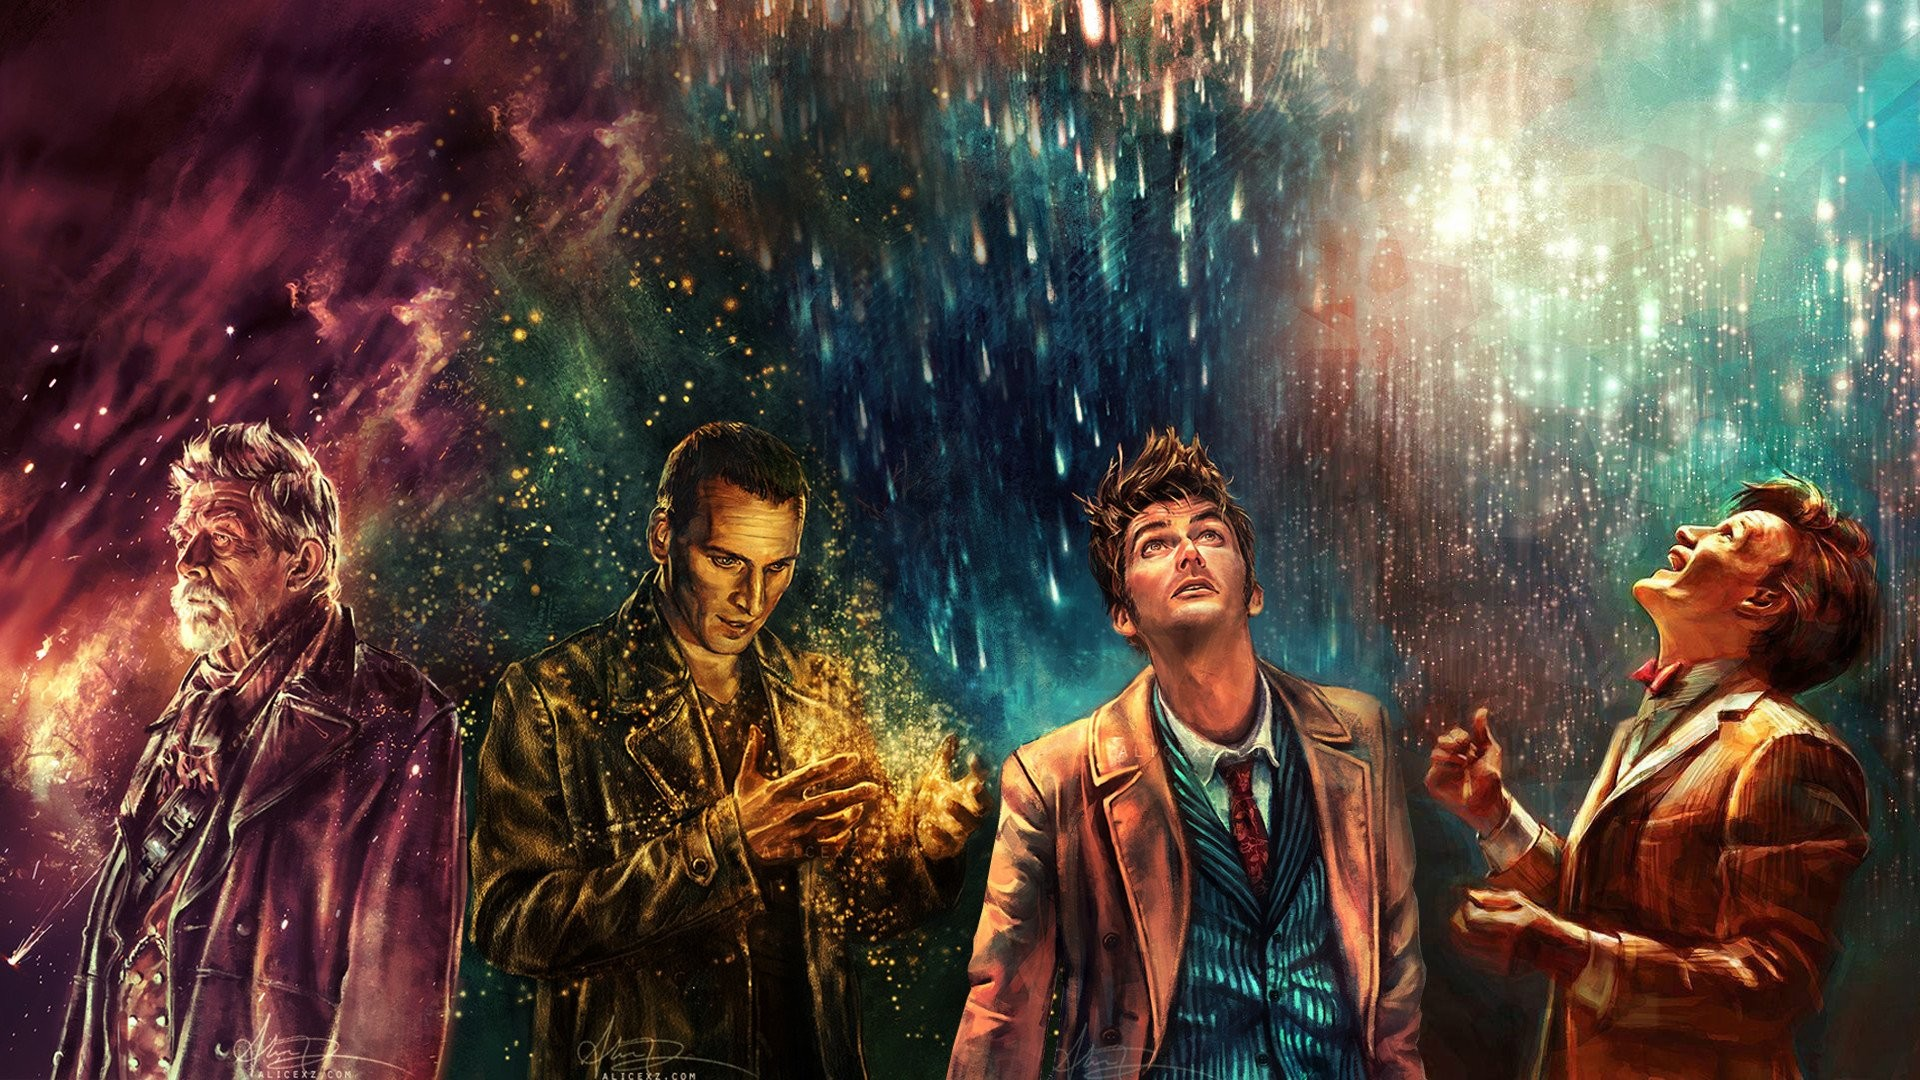 David tennant doctor who wallpaper 62 images 1920x1080 david tennant doctor who quote sci fi time lord hd wallpaper background voltagebd Image collections